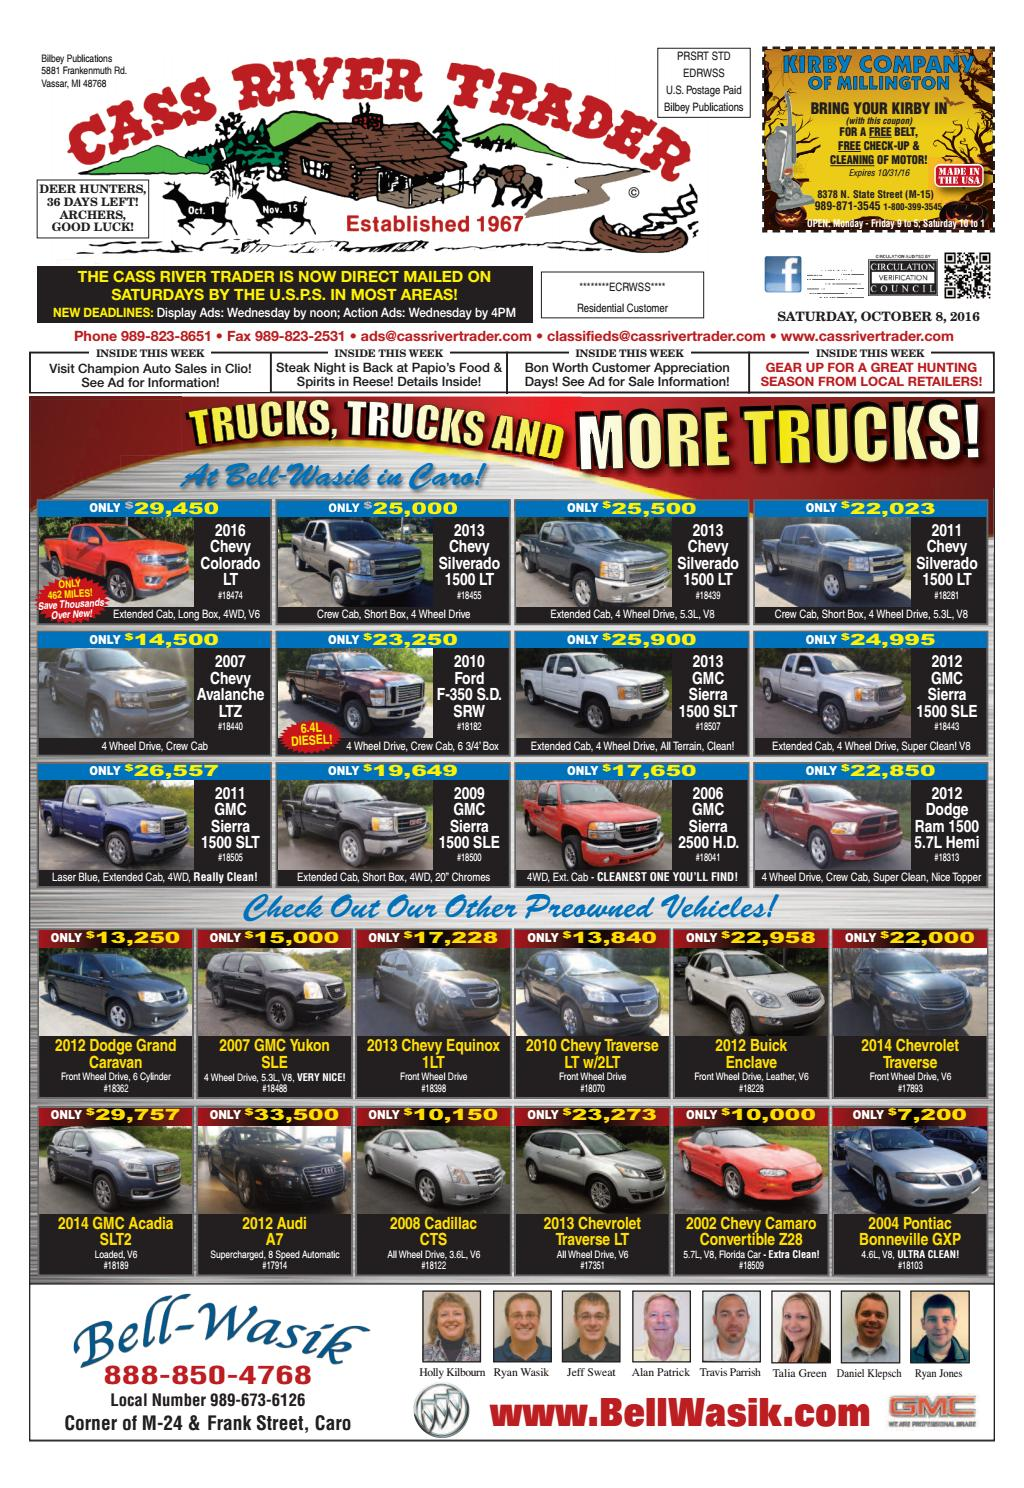 Crt10082016web by Cass River Trader - issuu